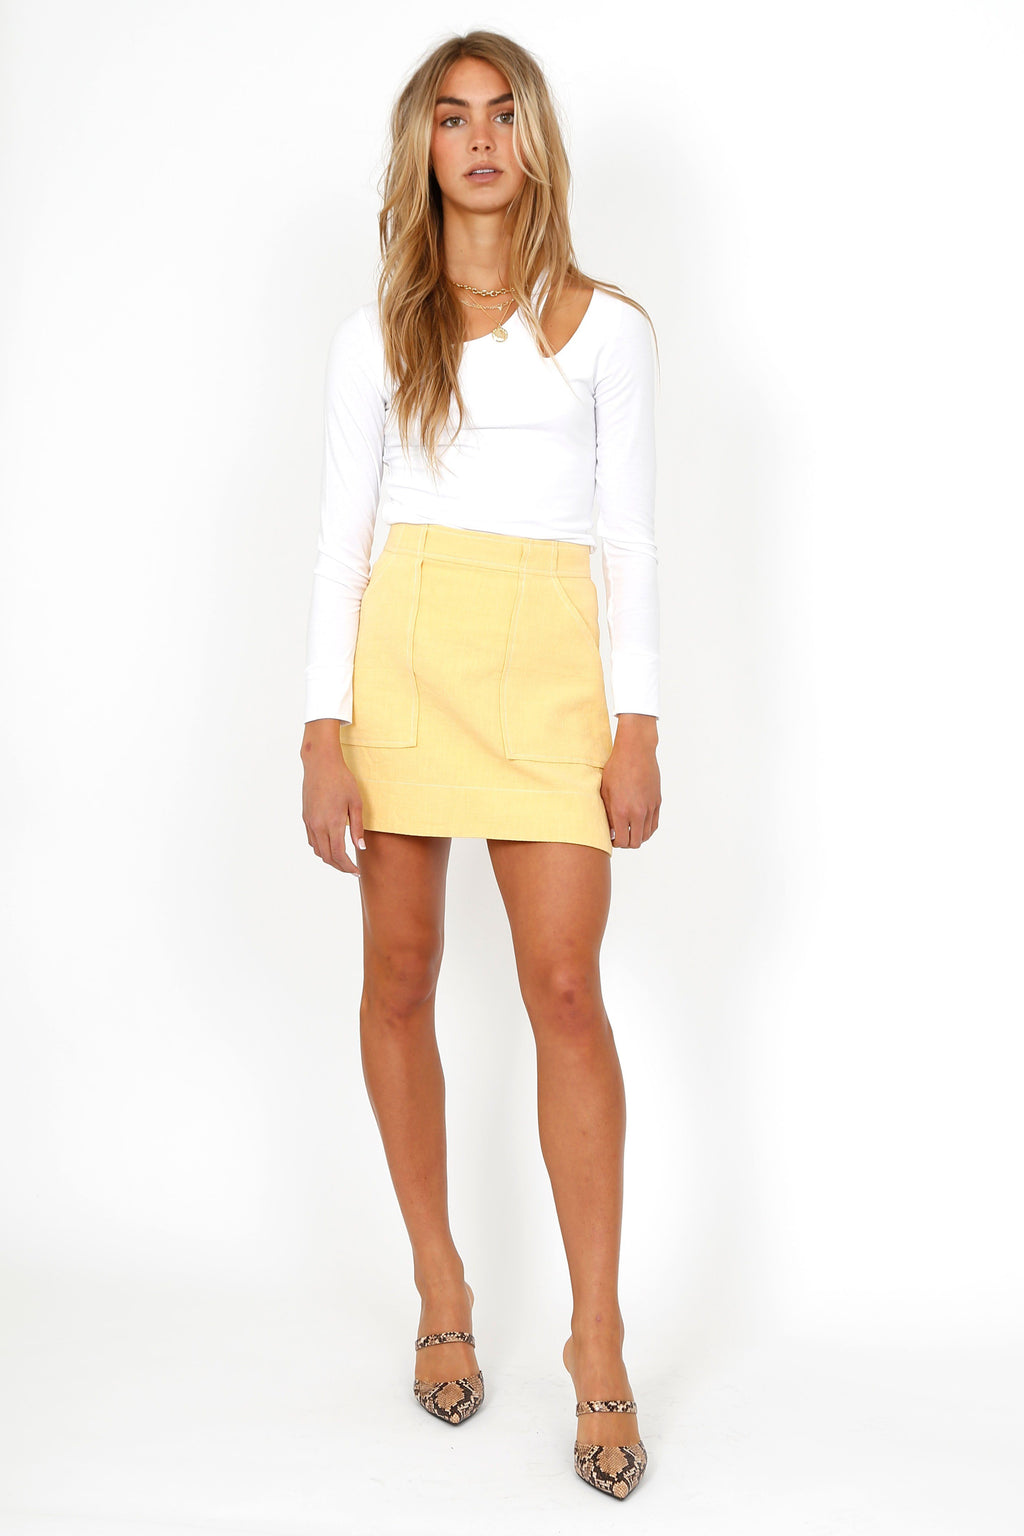 BEC + BRIDGE | Oliver Mini Skirt - Honey